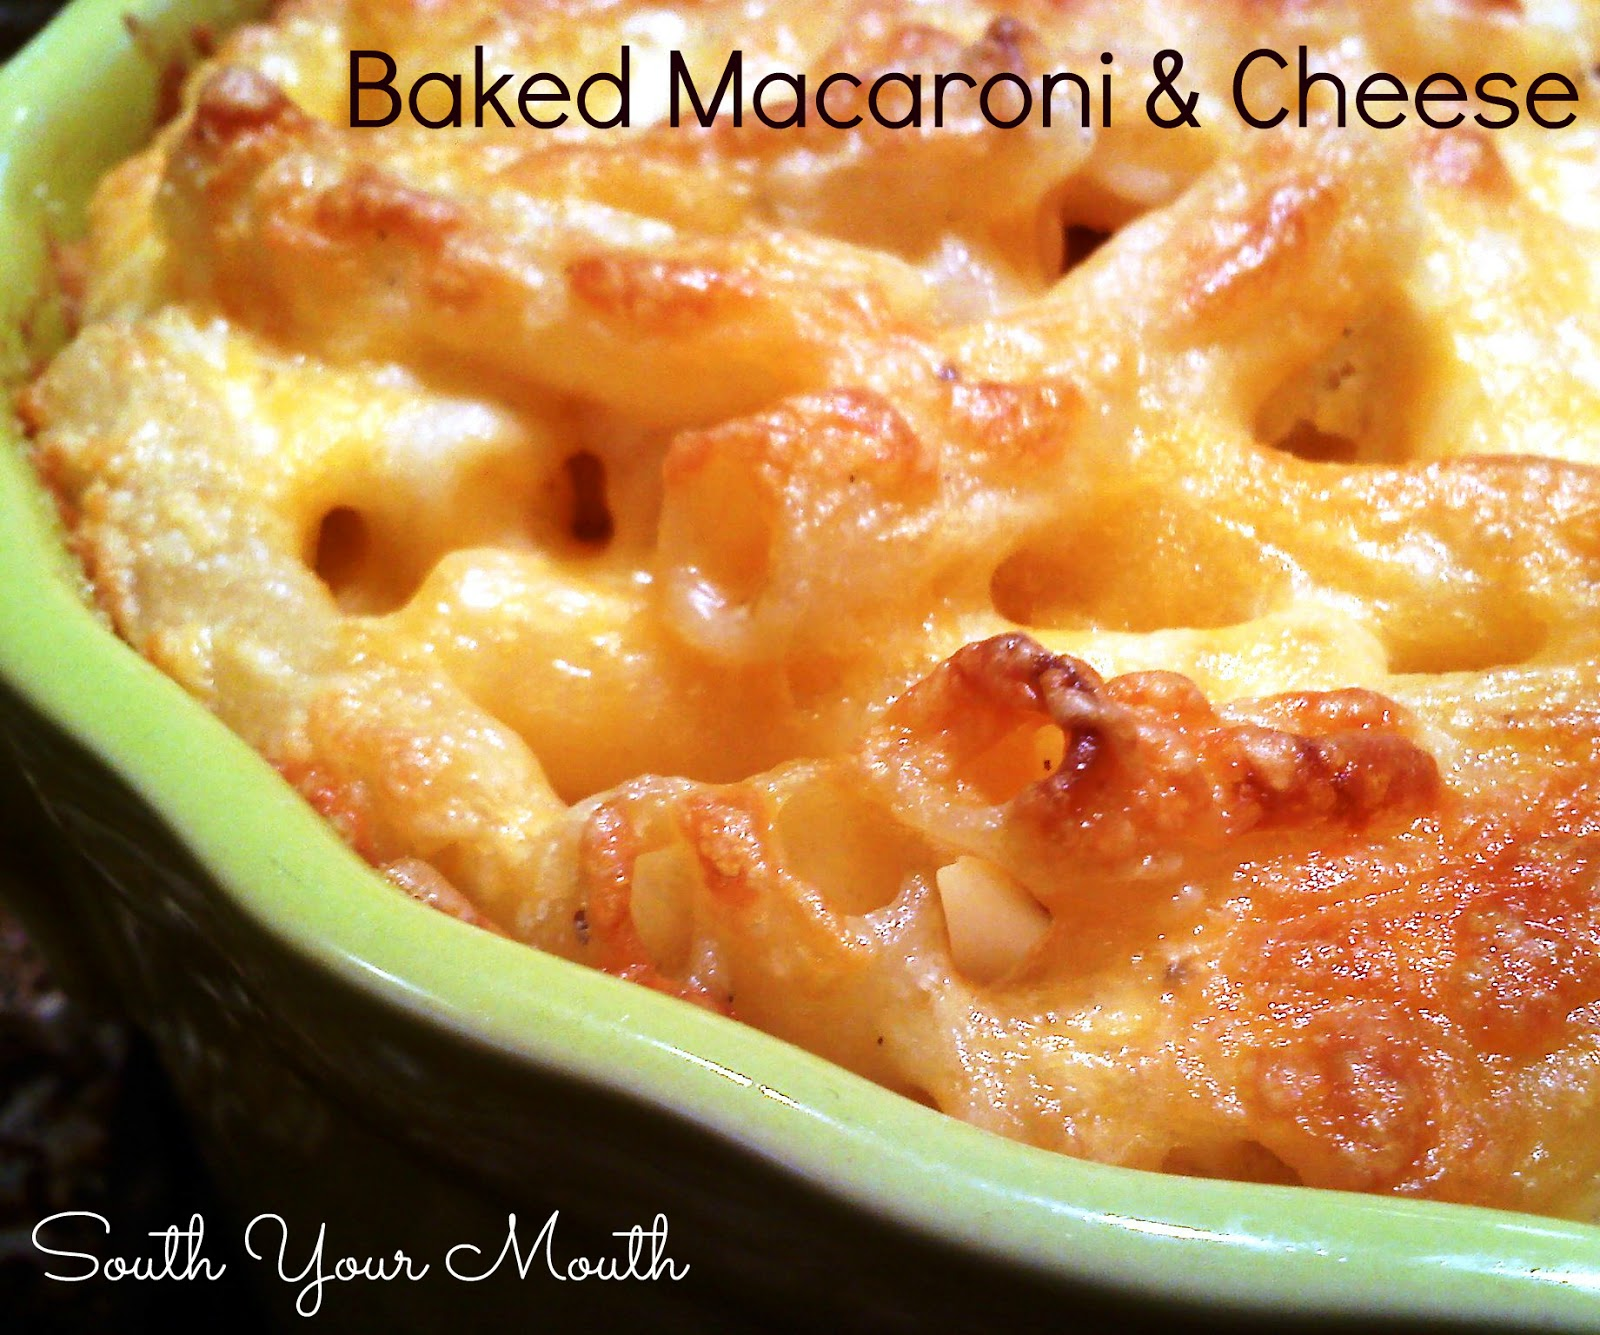 Baked+Macaroni+and+Cheese+pm.jpg